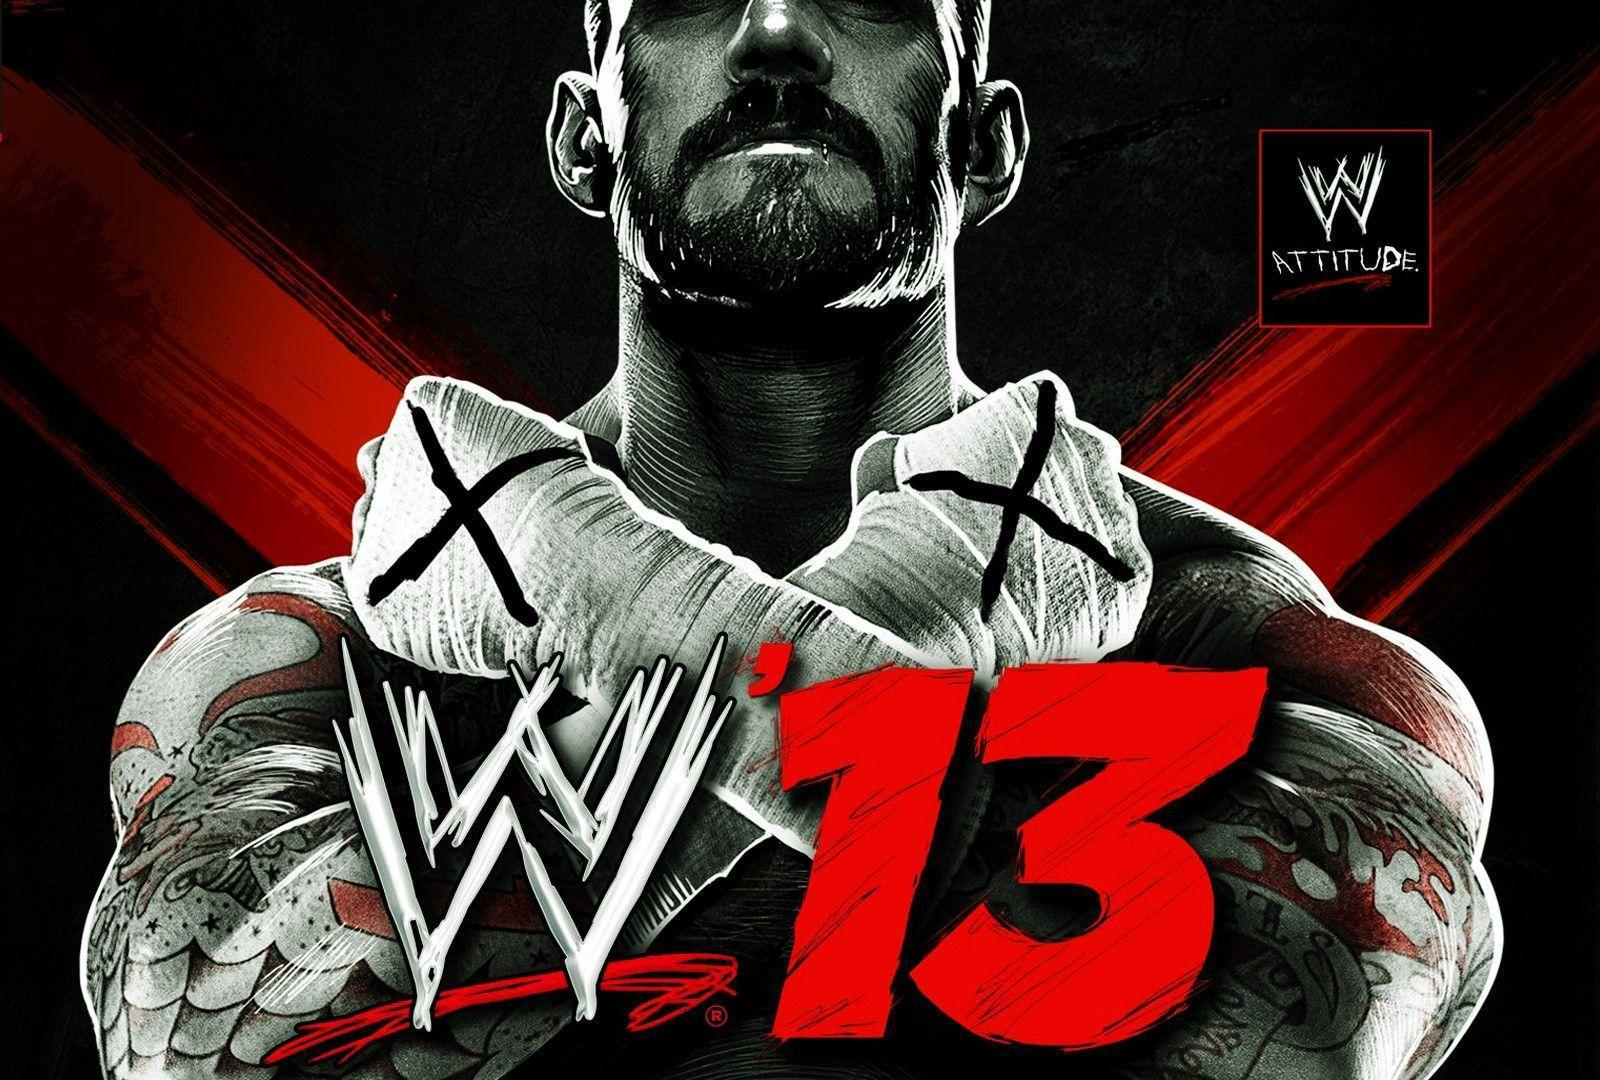 WWE '13 Wallpapers | HD Wallpapers Base